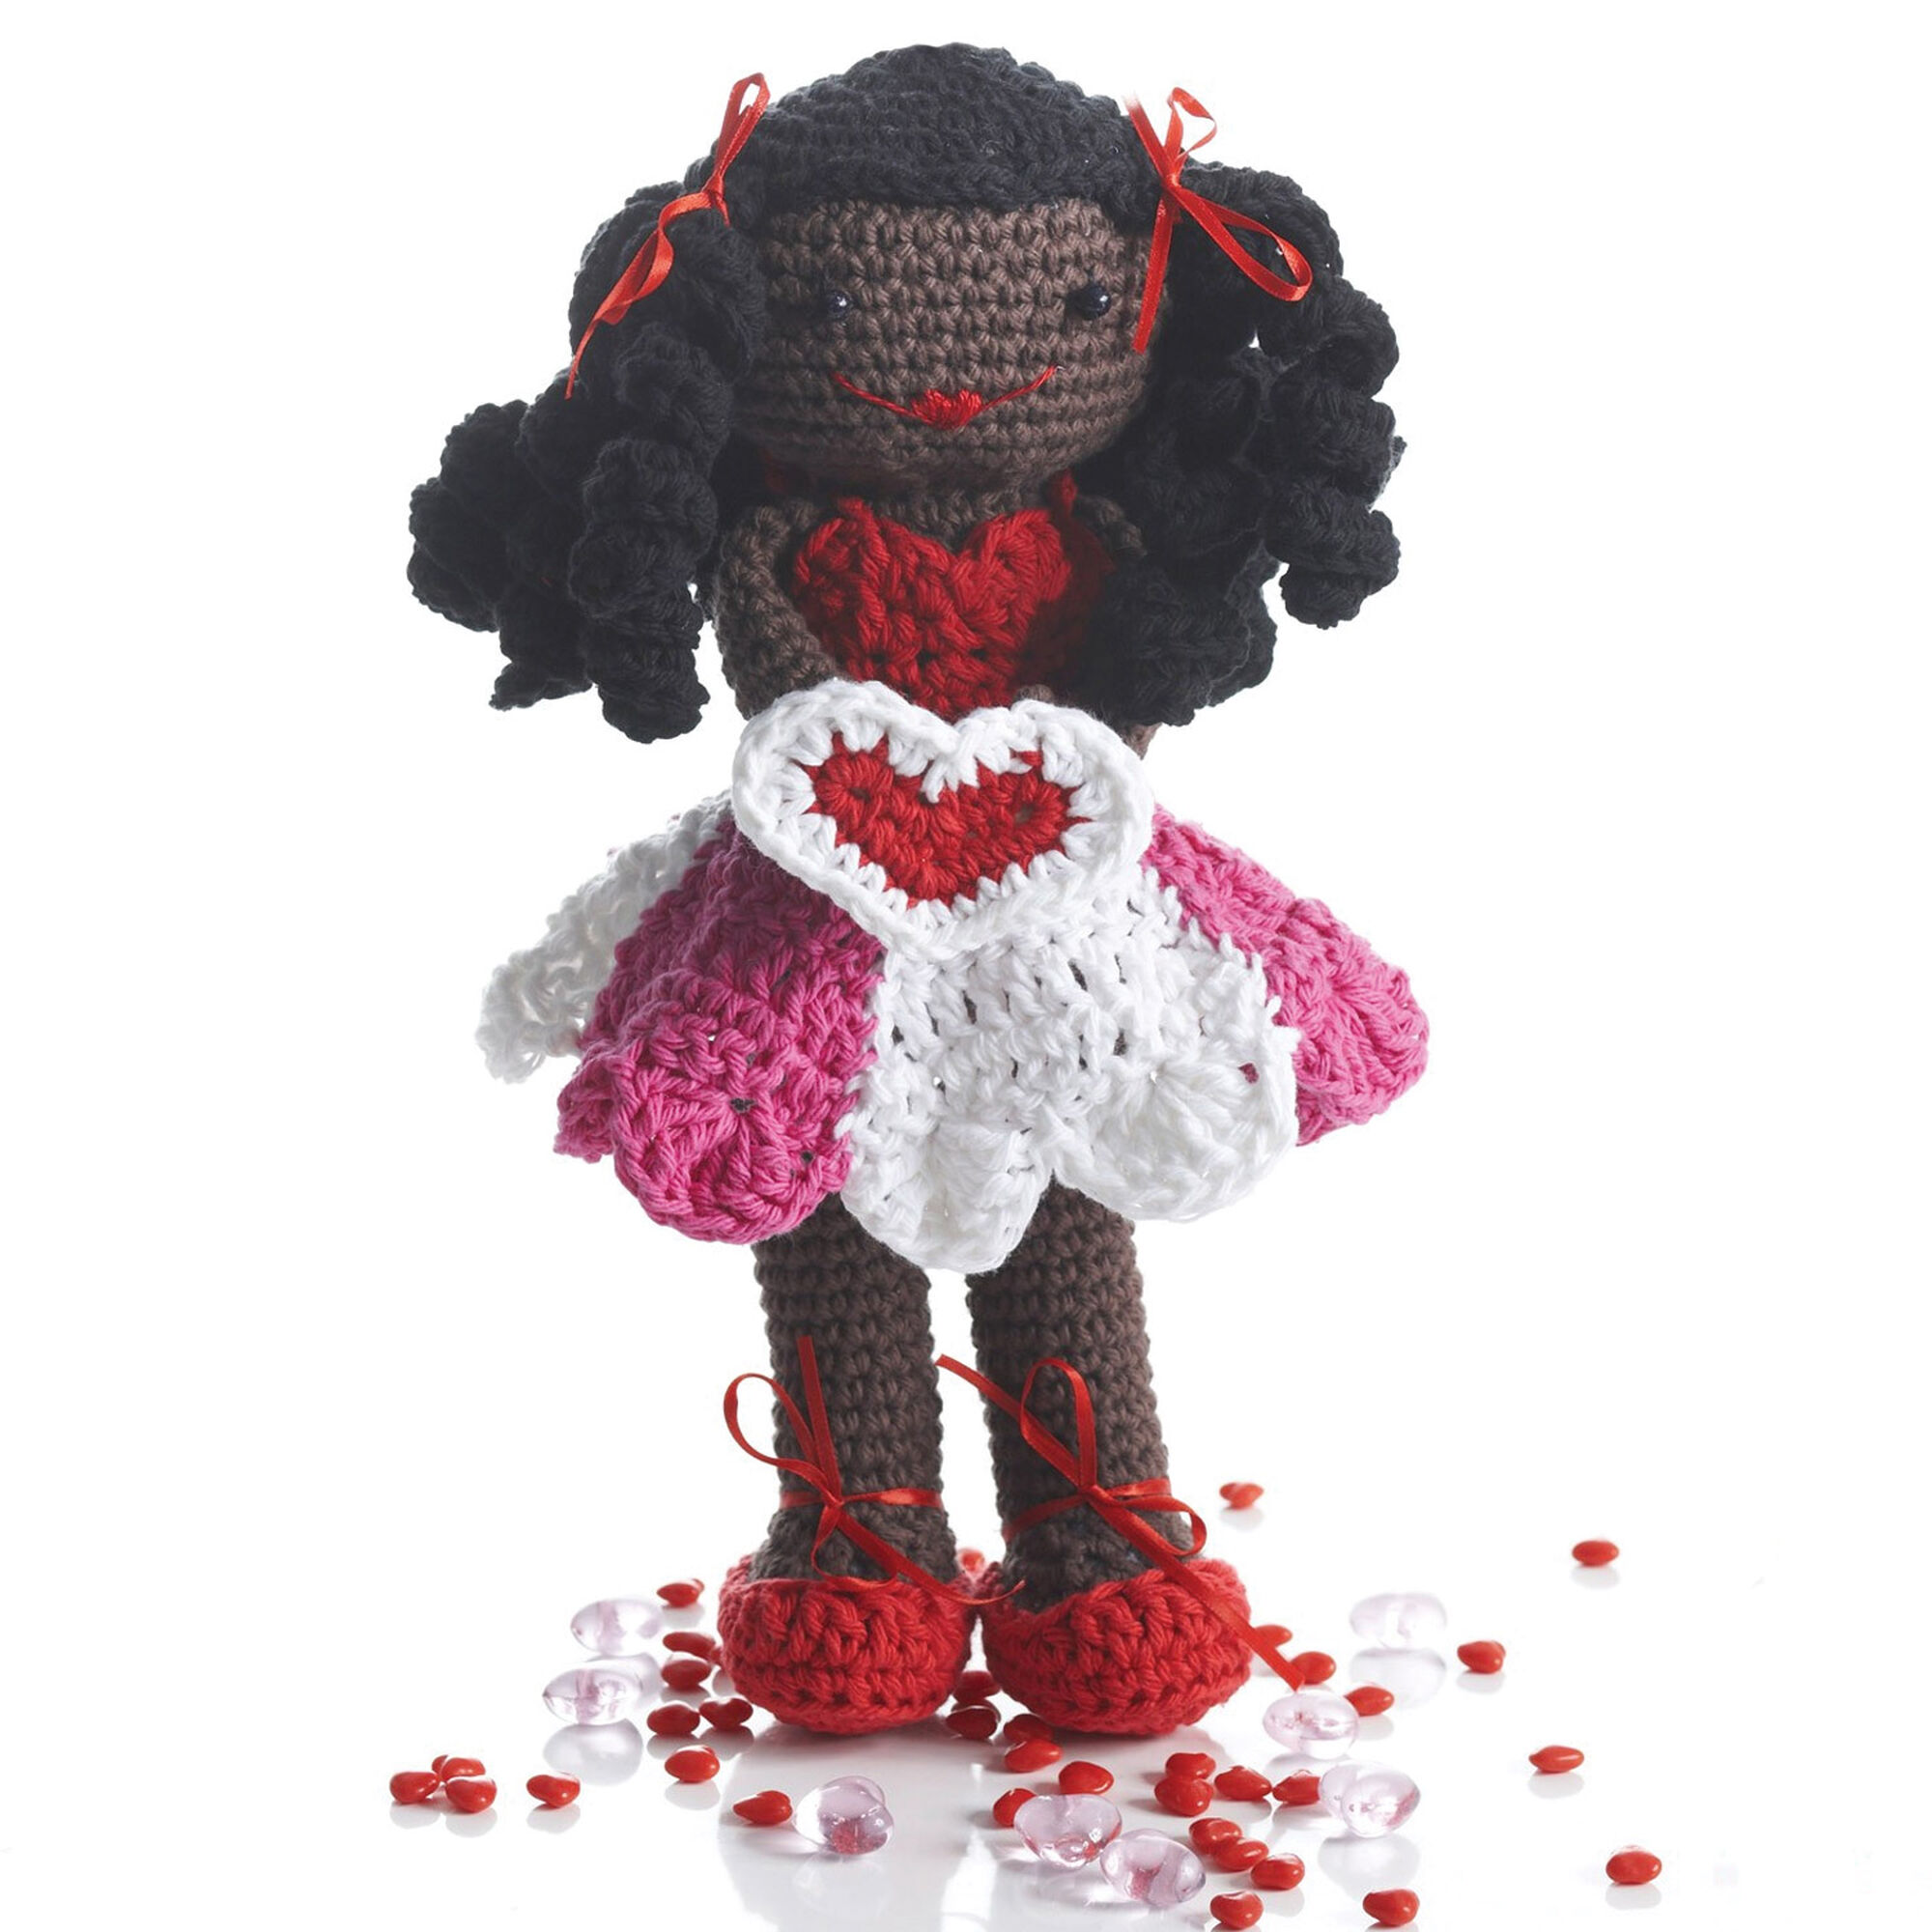 Lily Sugar'n Cream Valentines Lily Doll - One way you can show your love for kids this Valentine's is by crocheting these simple crochet patterns. #simplecrochetpatterns #crochetpatterns #kidscrochetpatterns